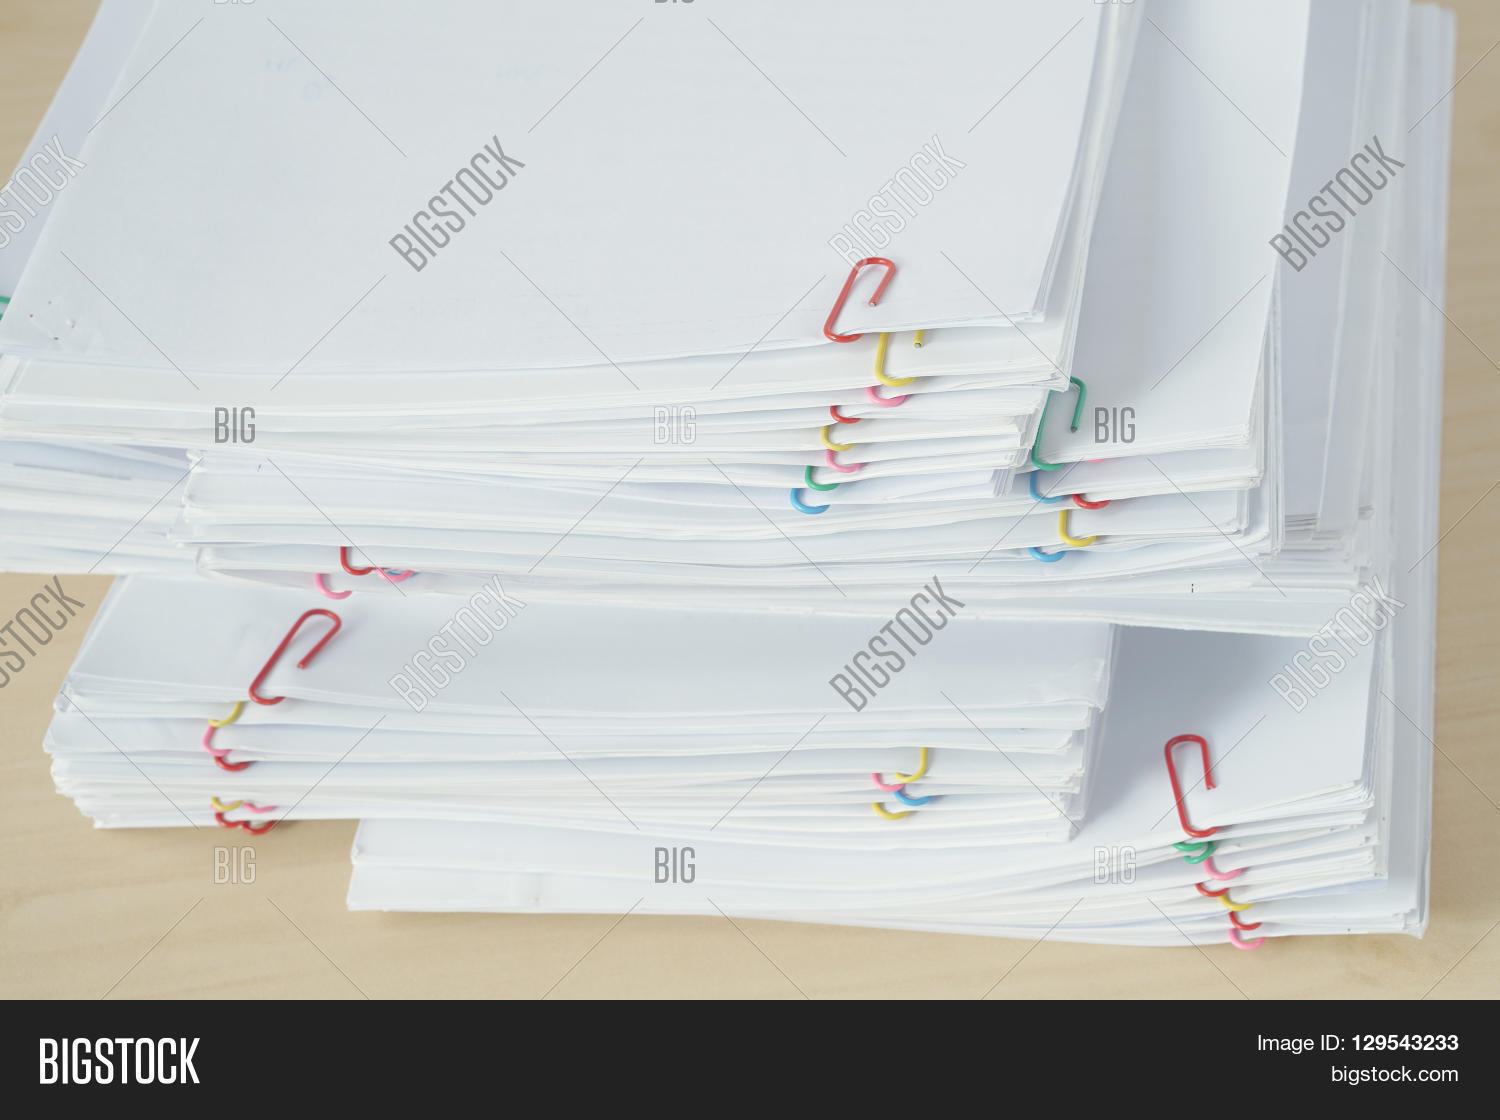 Pile Of Reports : Pile workload paperwork reports image photo bigstock